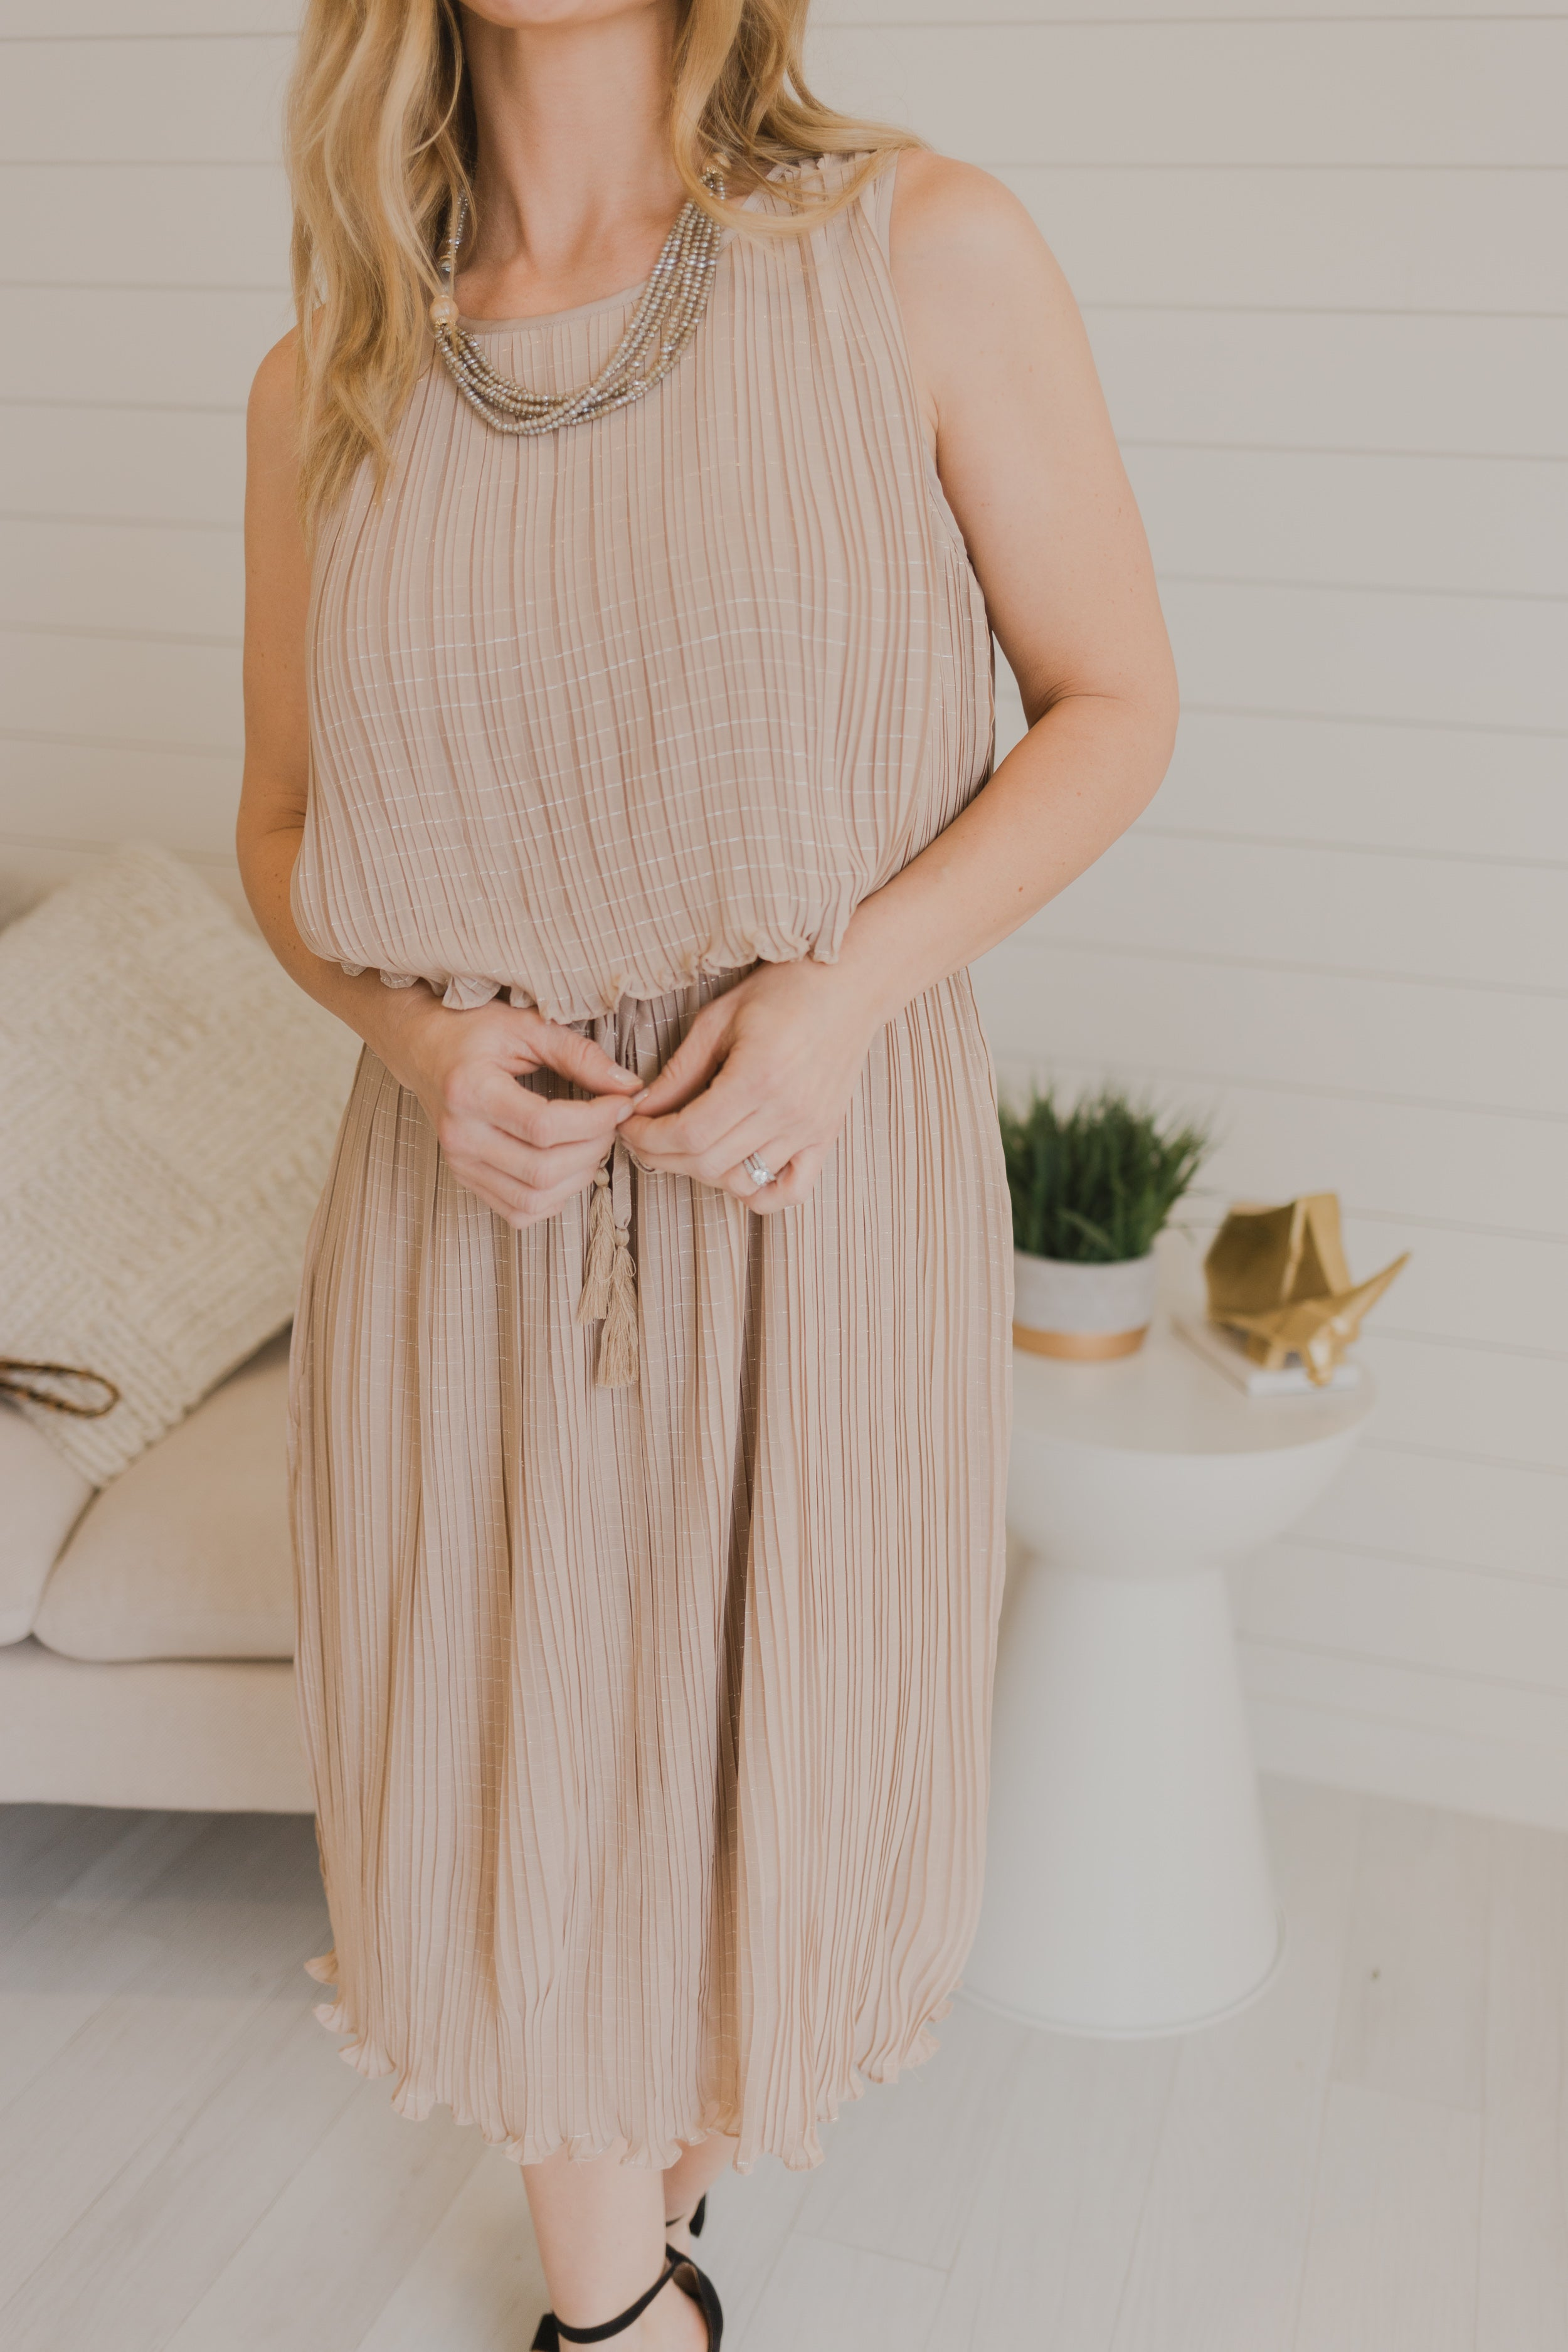 Mocha Metallic Chiffon Pleated Dress